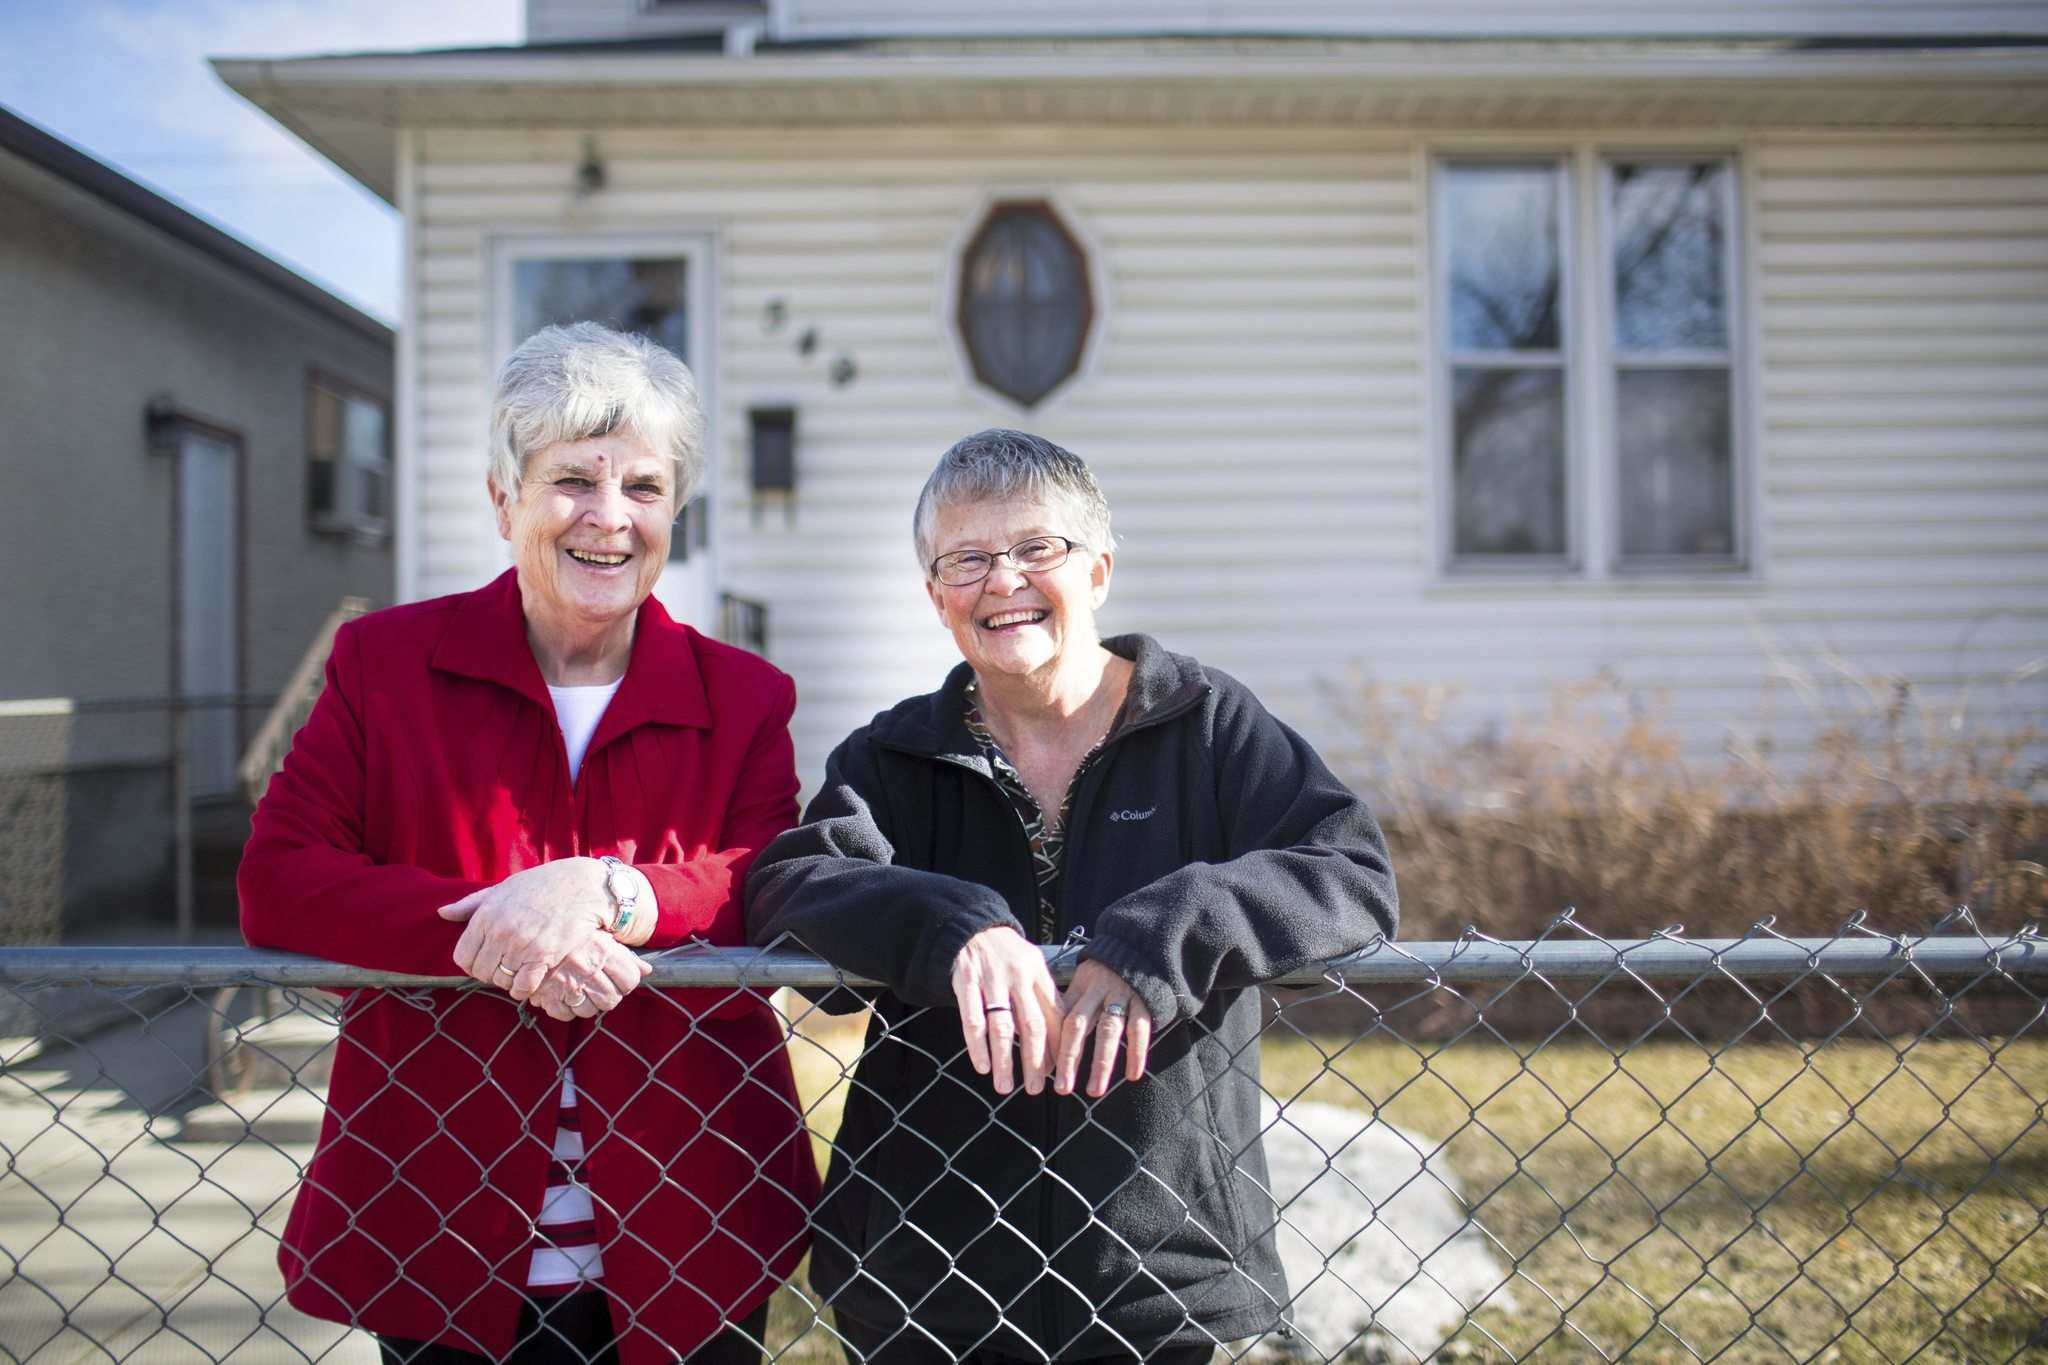 MIKAELA MACKENZIE / WINNIPEG FREE PRESS</p><p>Sister Bernadette O'Reilly (left) and Sister Margaret Hughes lived in the city for 40 years and touched the lives of thousands of people through their work at Rossbrook House.</p>